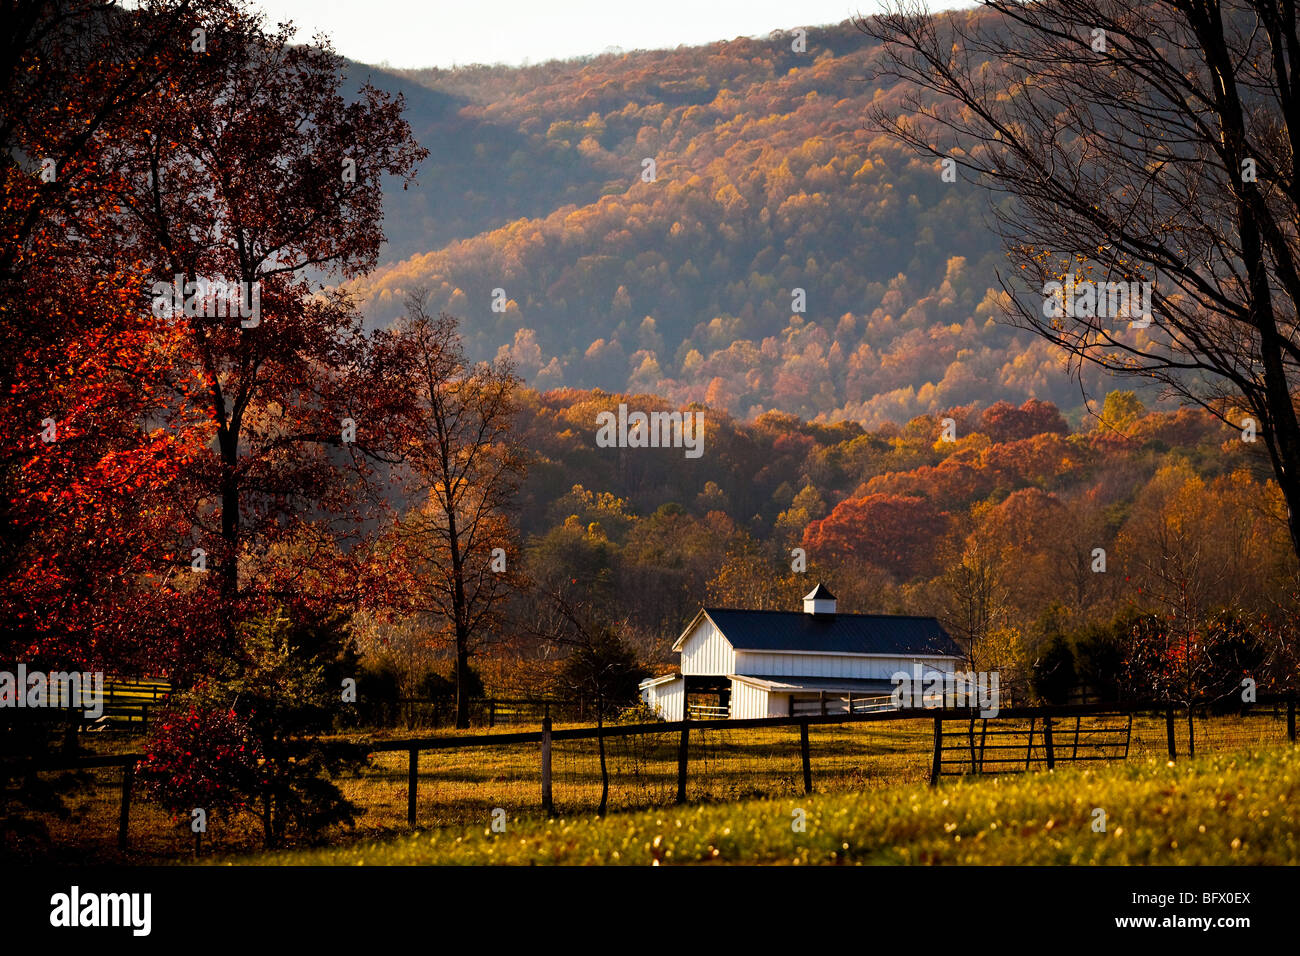 Autumn foliage around a farm in the shenandoah valley Usa countryside pictures